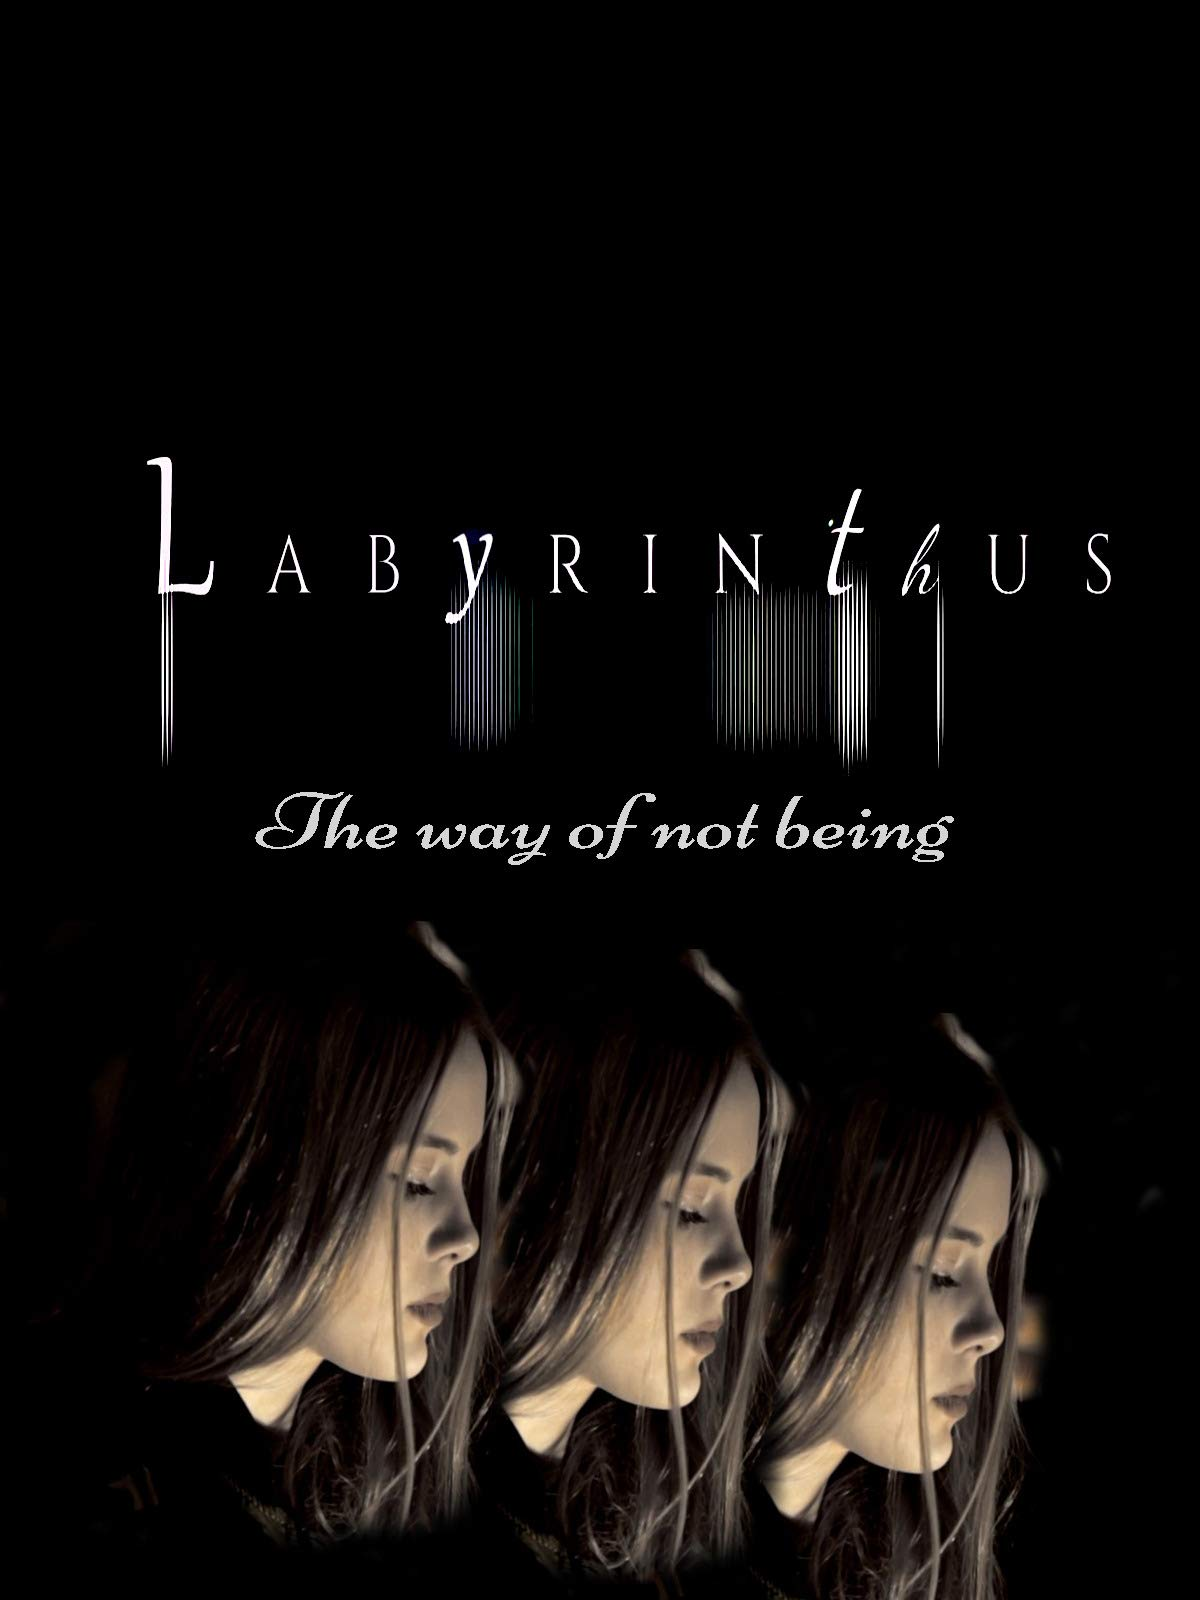 Labyrinthus (The way of not being)